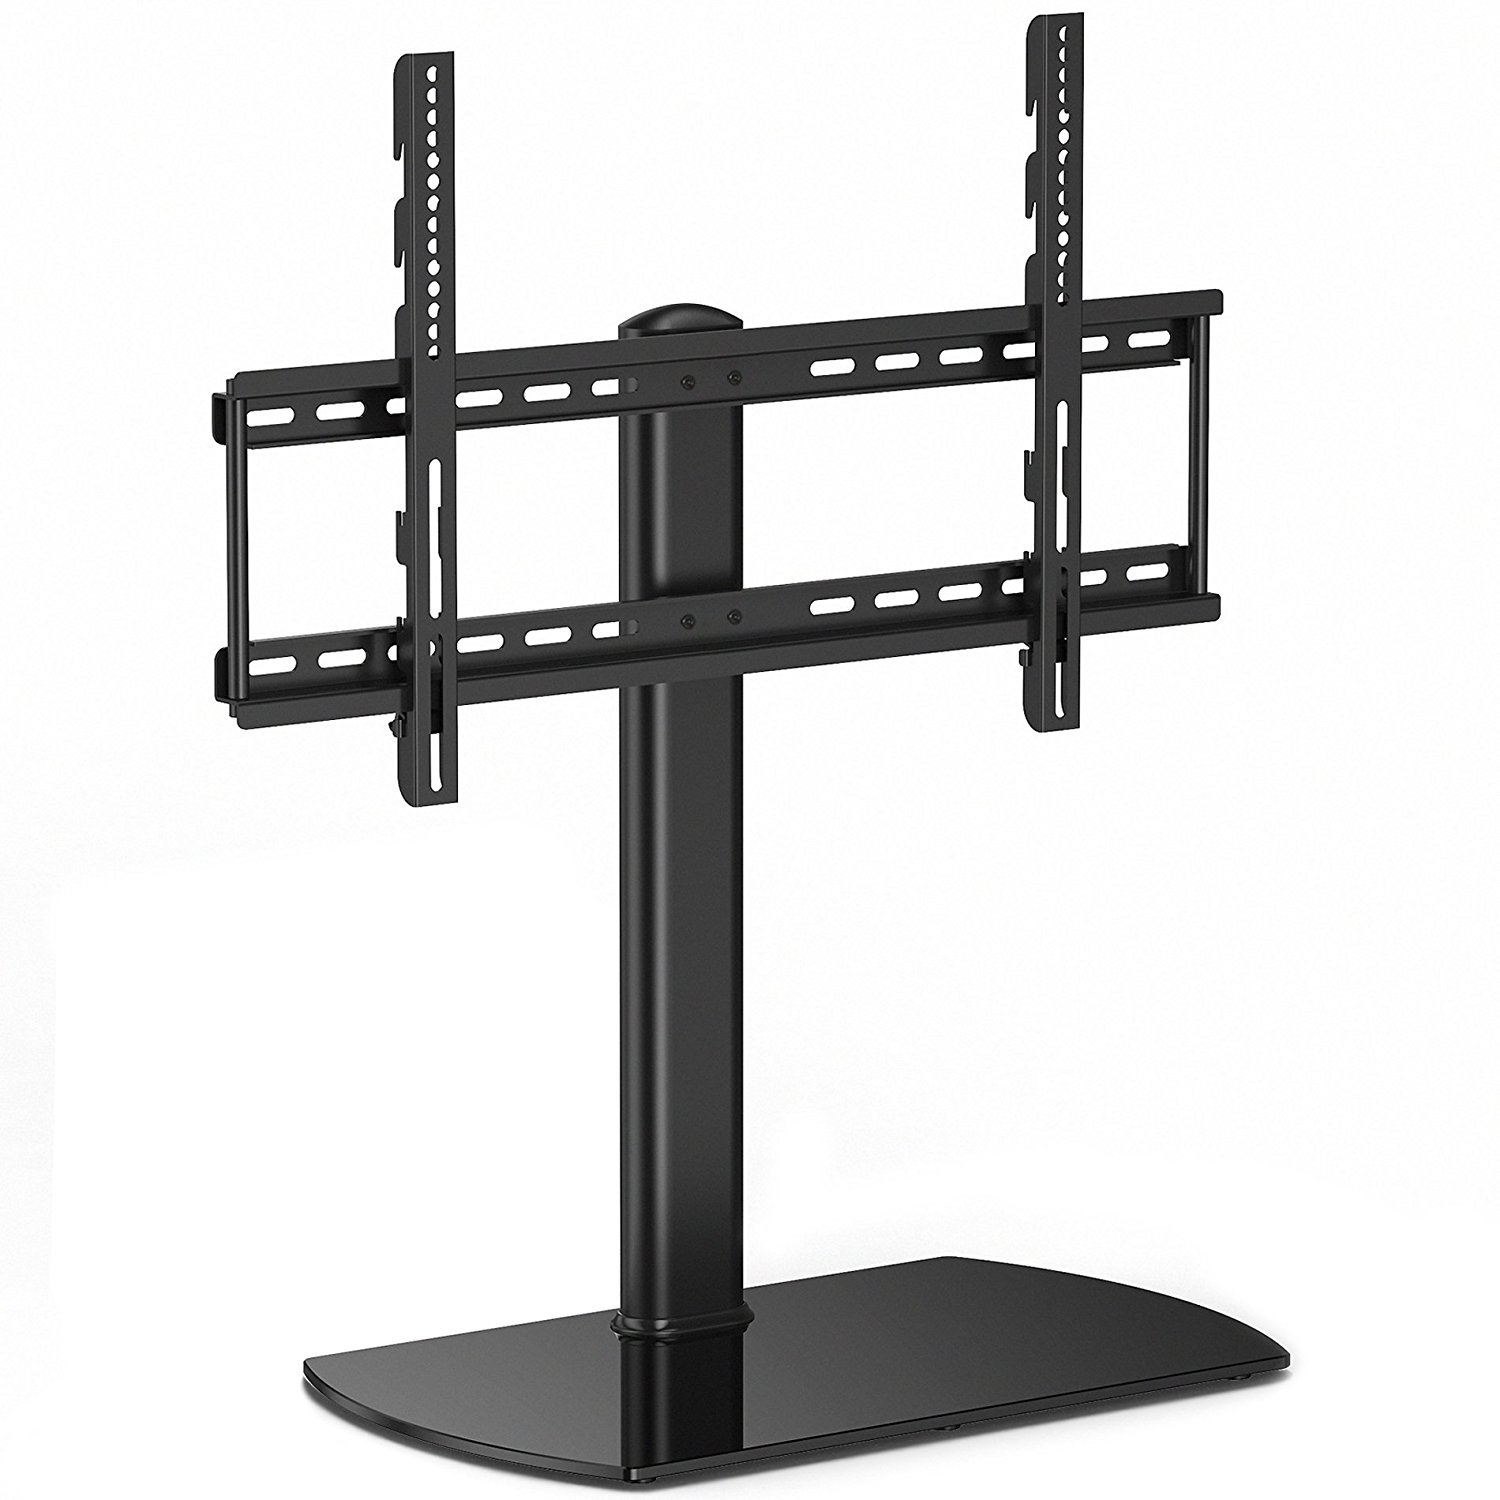 Fitueyes Universal Tabletop Tv Stand Base With Mount For 27 To 65